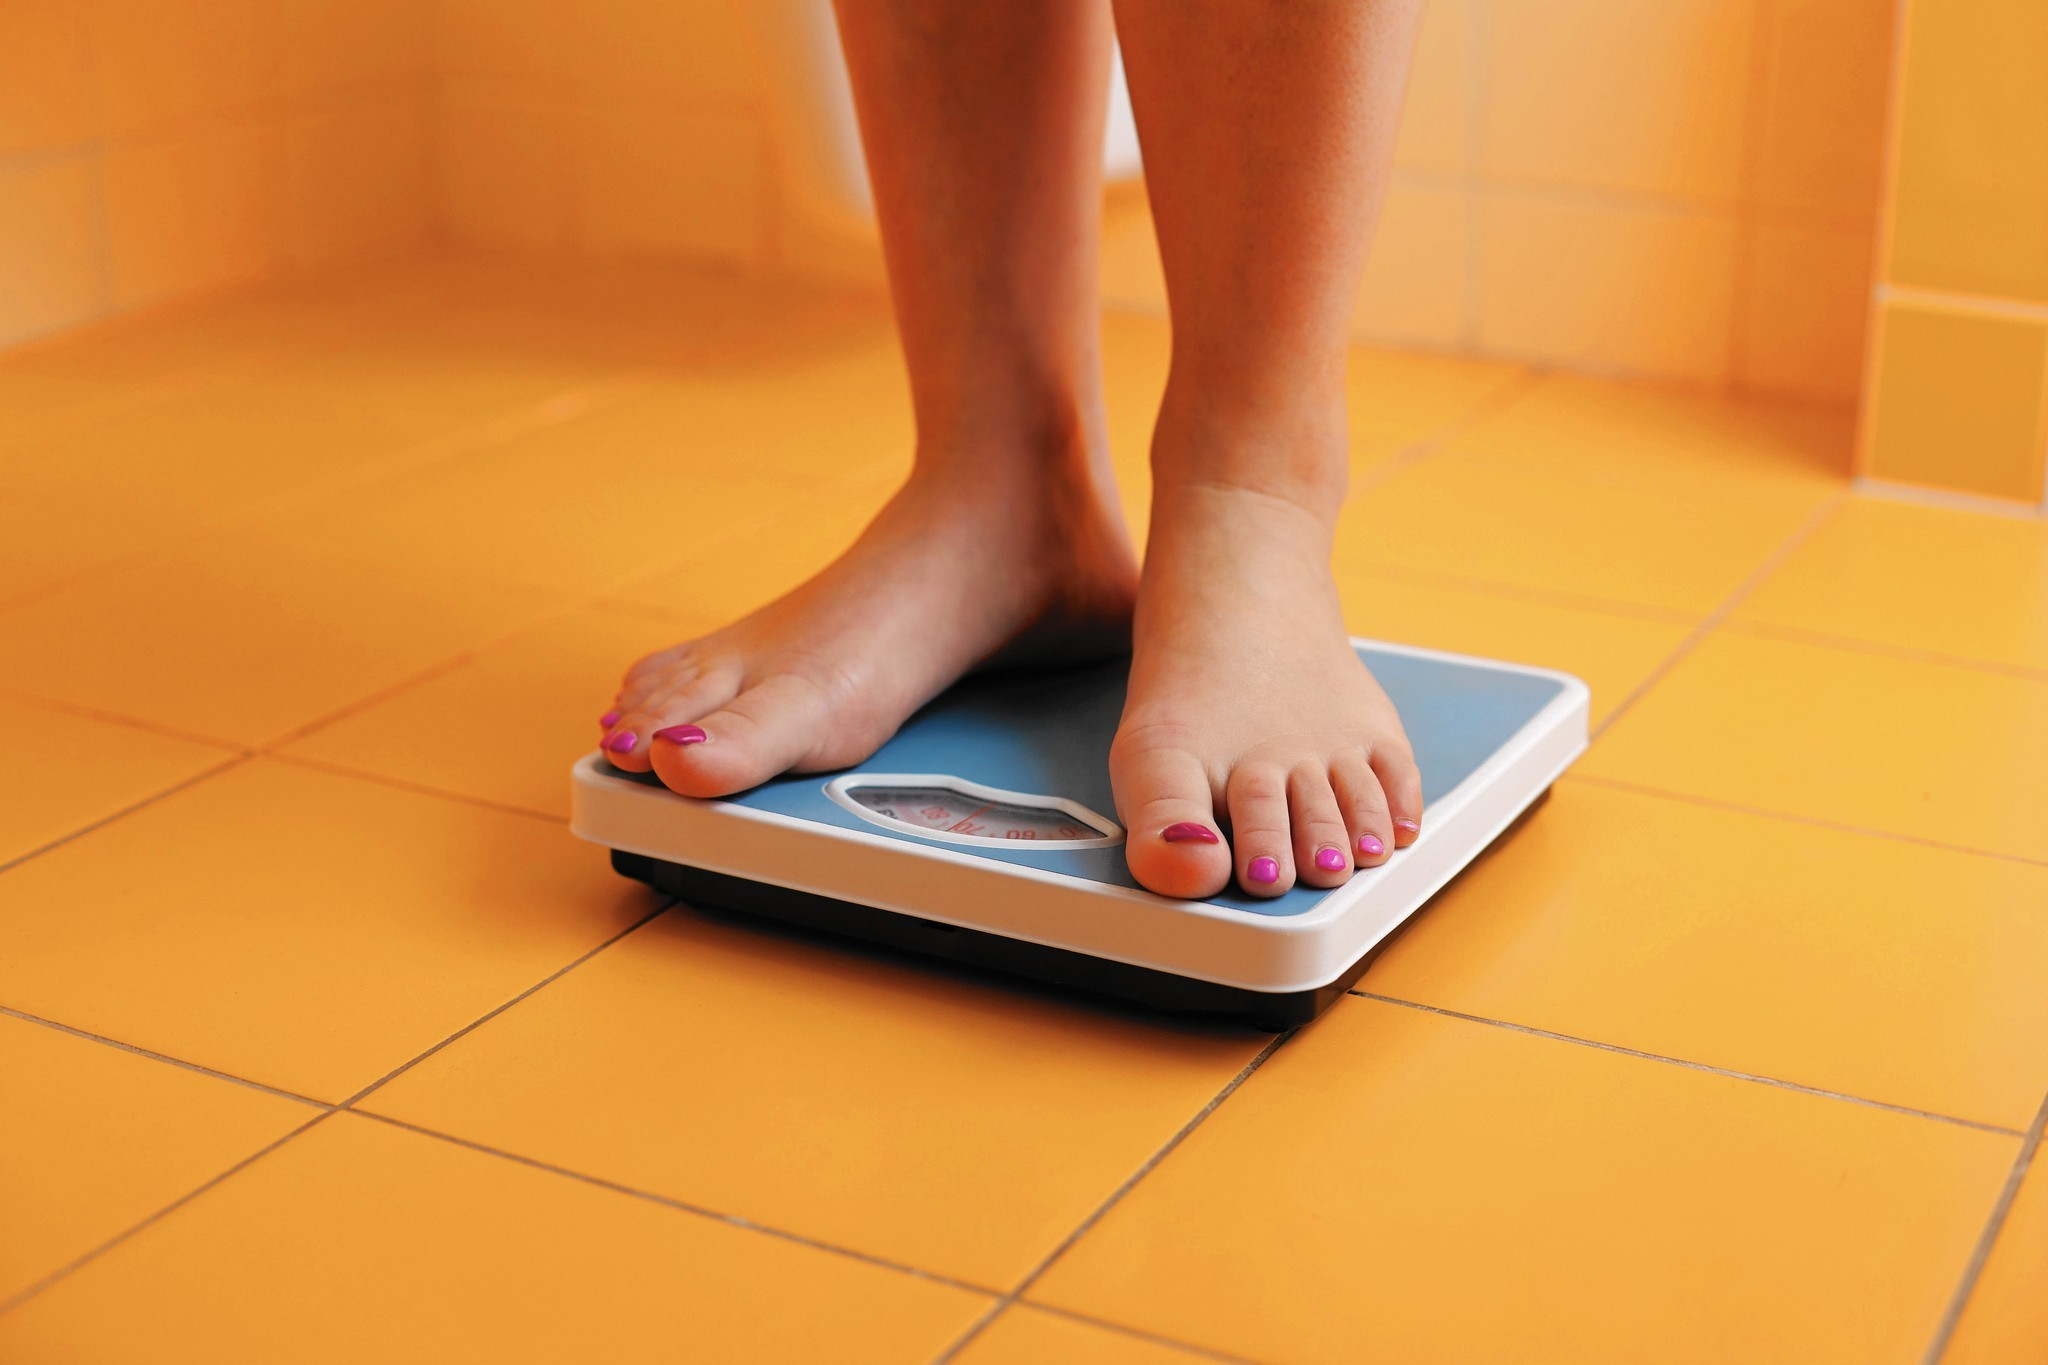 How to talk to your teen about weight: Don't